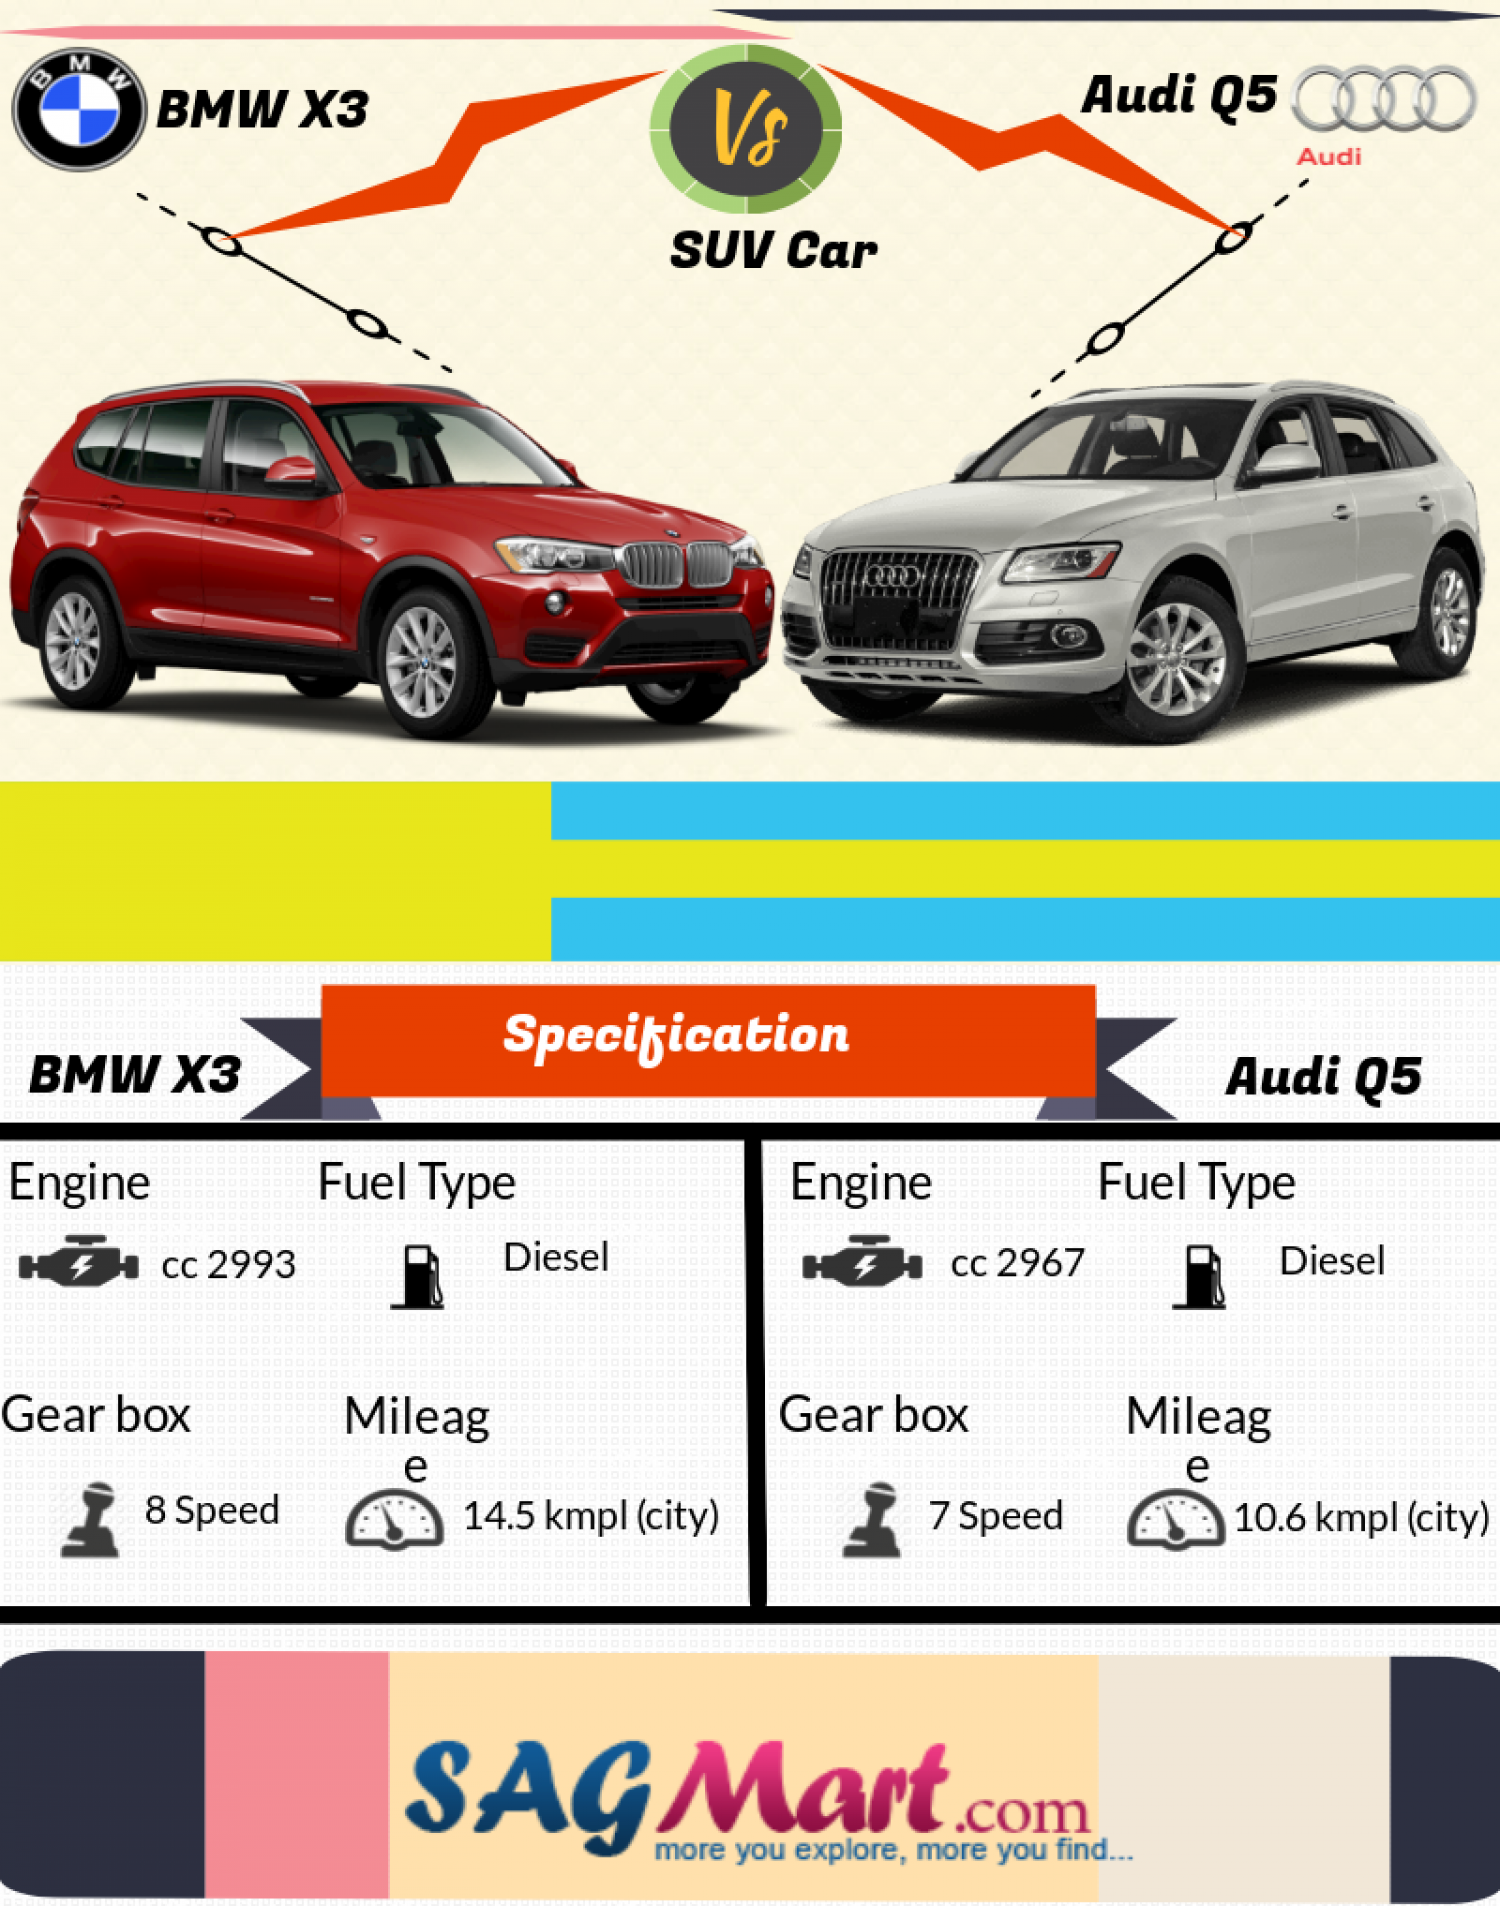 2016 Audi Q5 vs BMW X3  Compare SUV Cars Specification  Visually